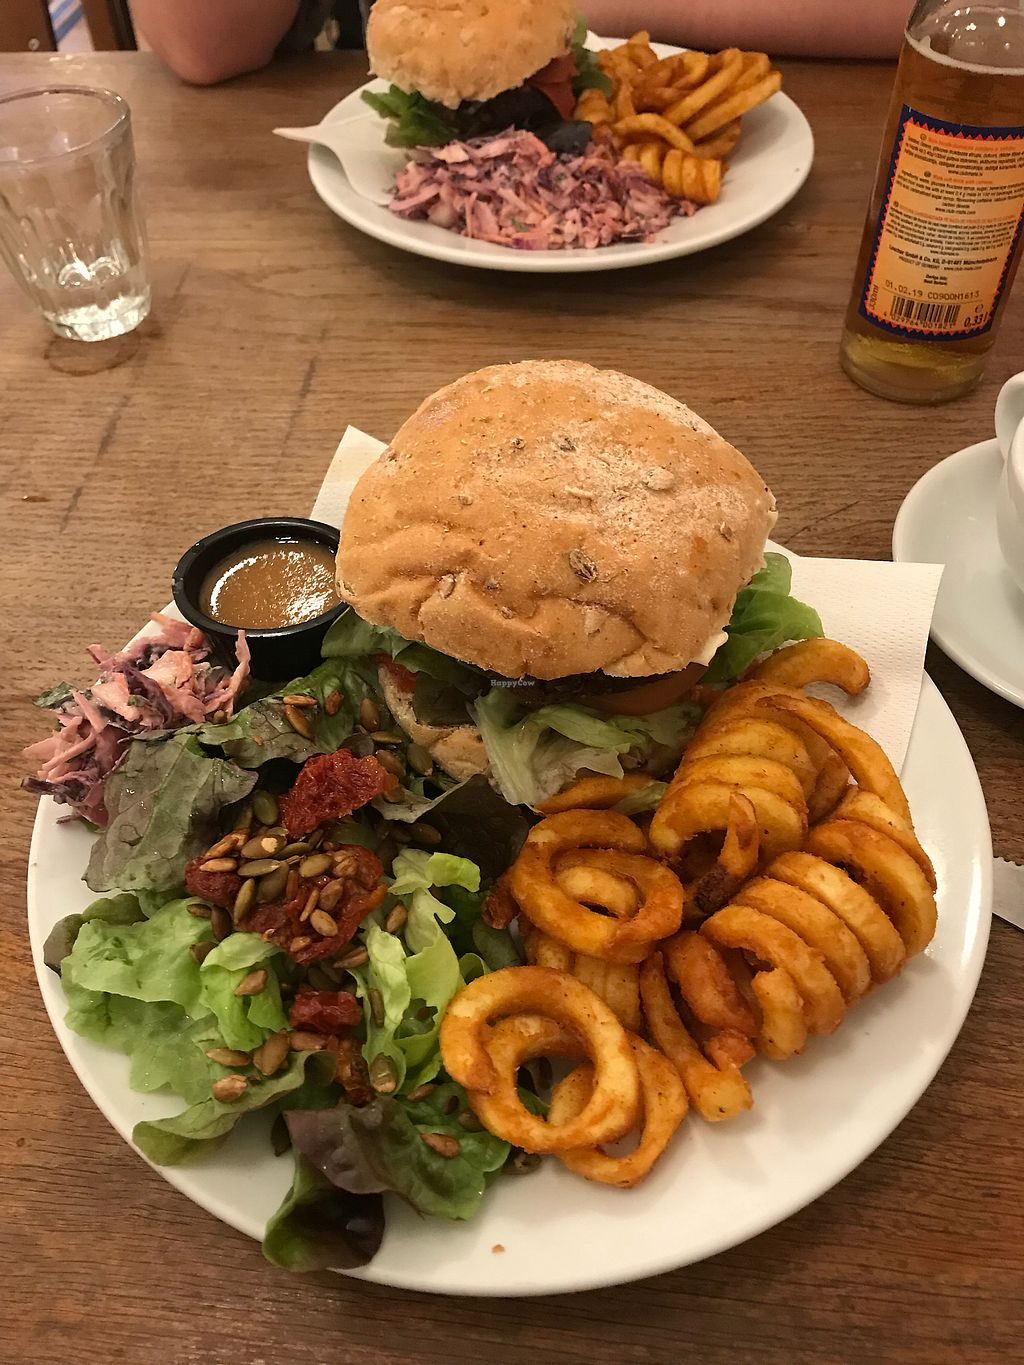 "Photo of Cafe Kino  by <a href=""/members/profile/RachelJenkins"">RachelJenkins</a> <br/>Kino classic and curly fries  <br/> April 16, 2018  - <a href='/contact/abuse/image/7428/386932'>Report</a>"